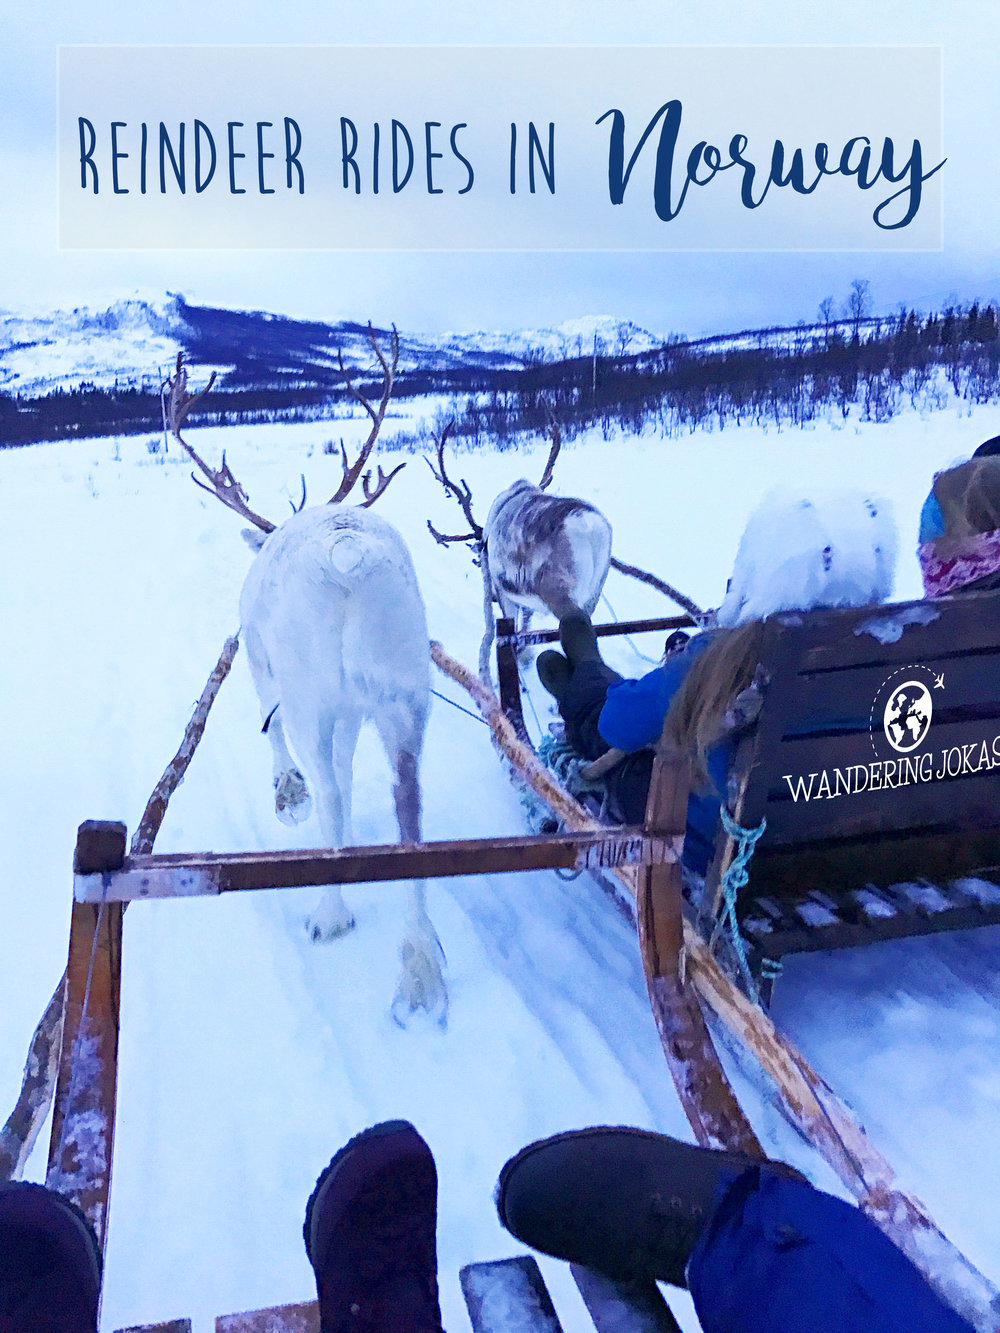 Reindeer Rides in Norway - Wandering Jokas Travel Blog